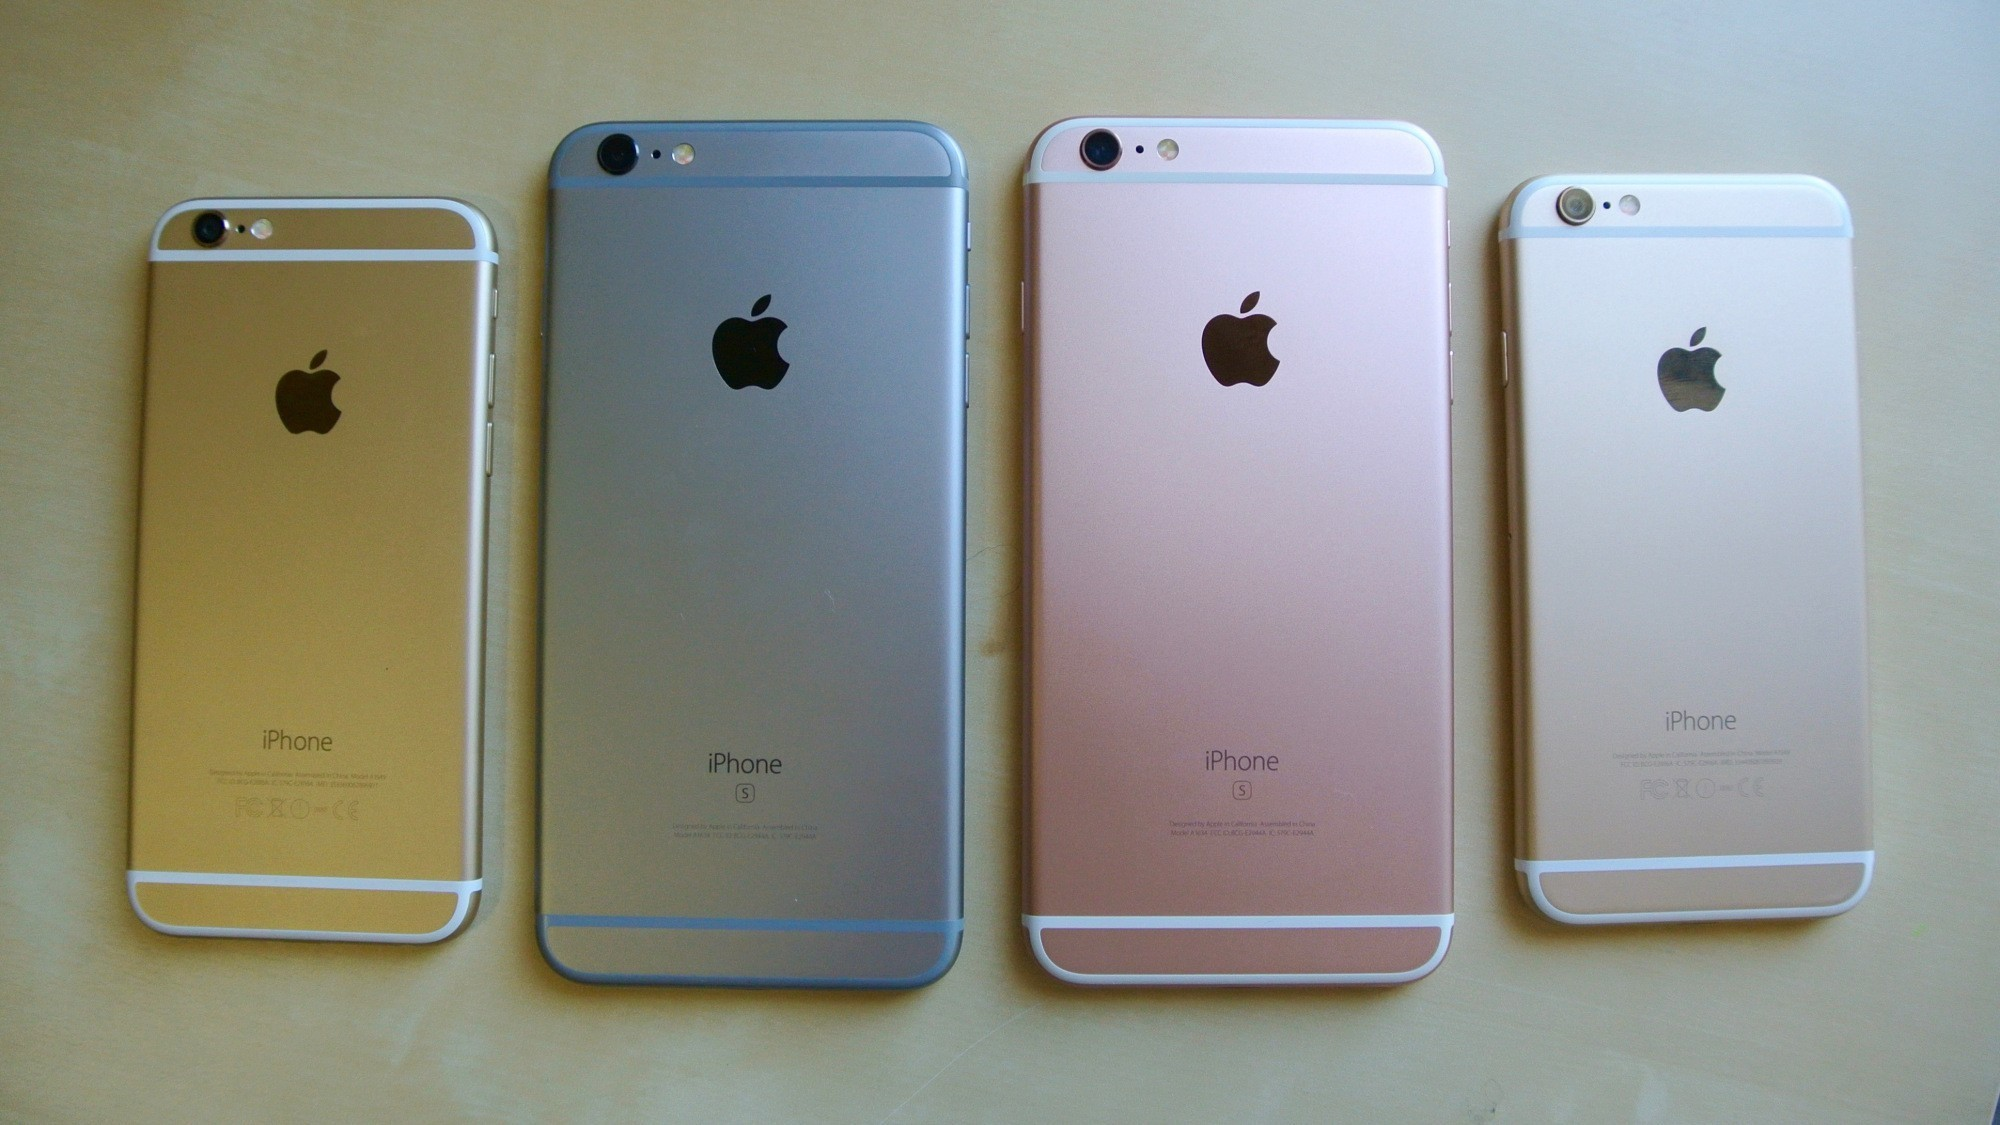 KGI: Apple to revamp iPhone lineup in 2017 w/ iPhone 4-like design, AMOLED screen, 5.8-inch model